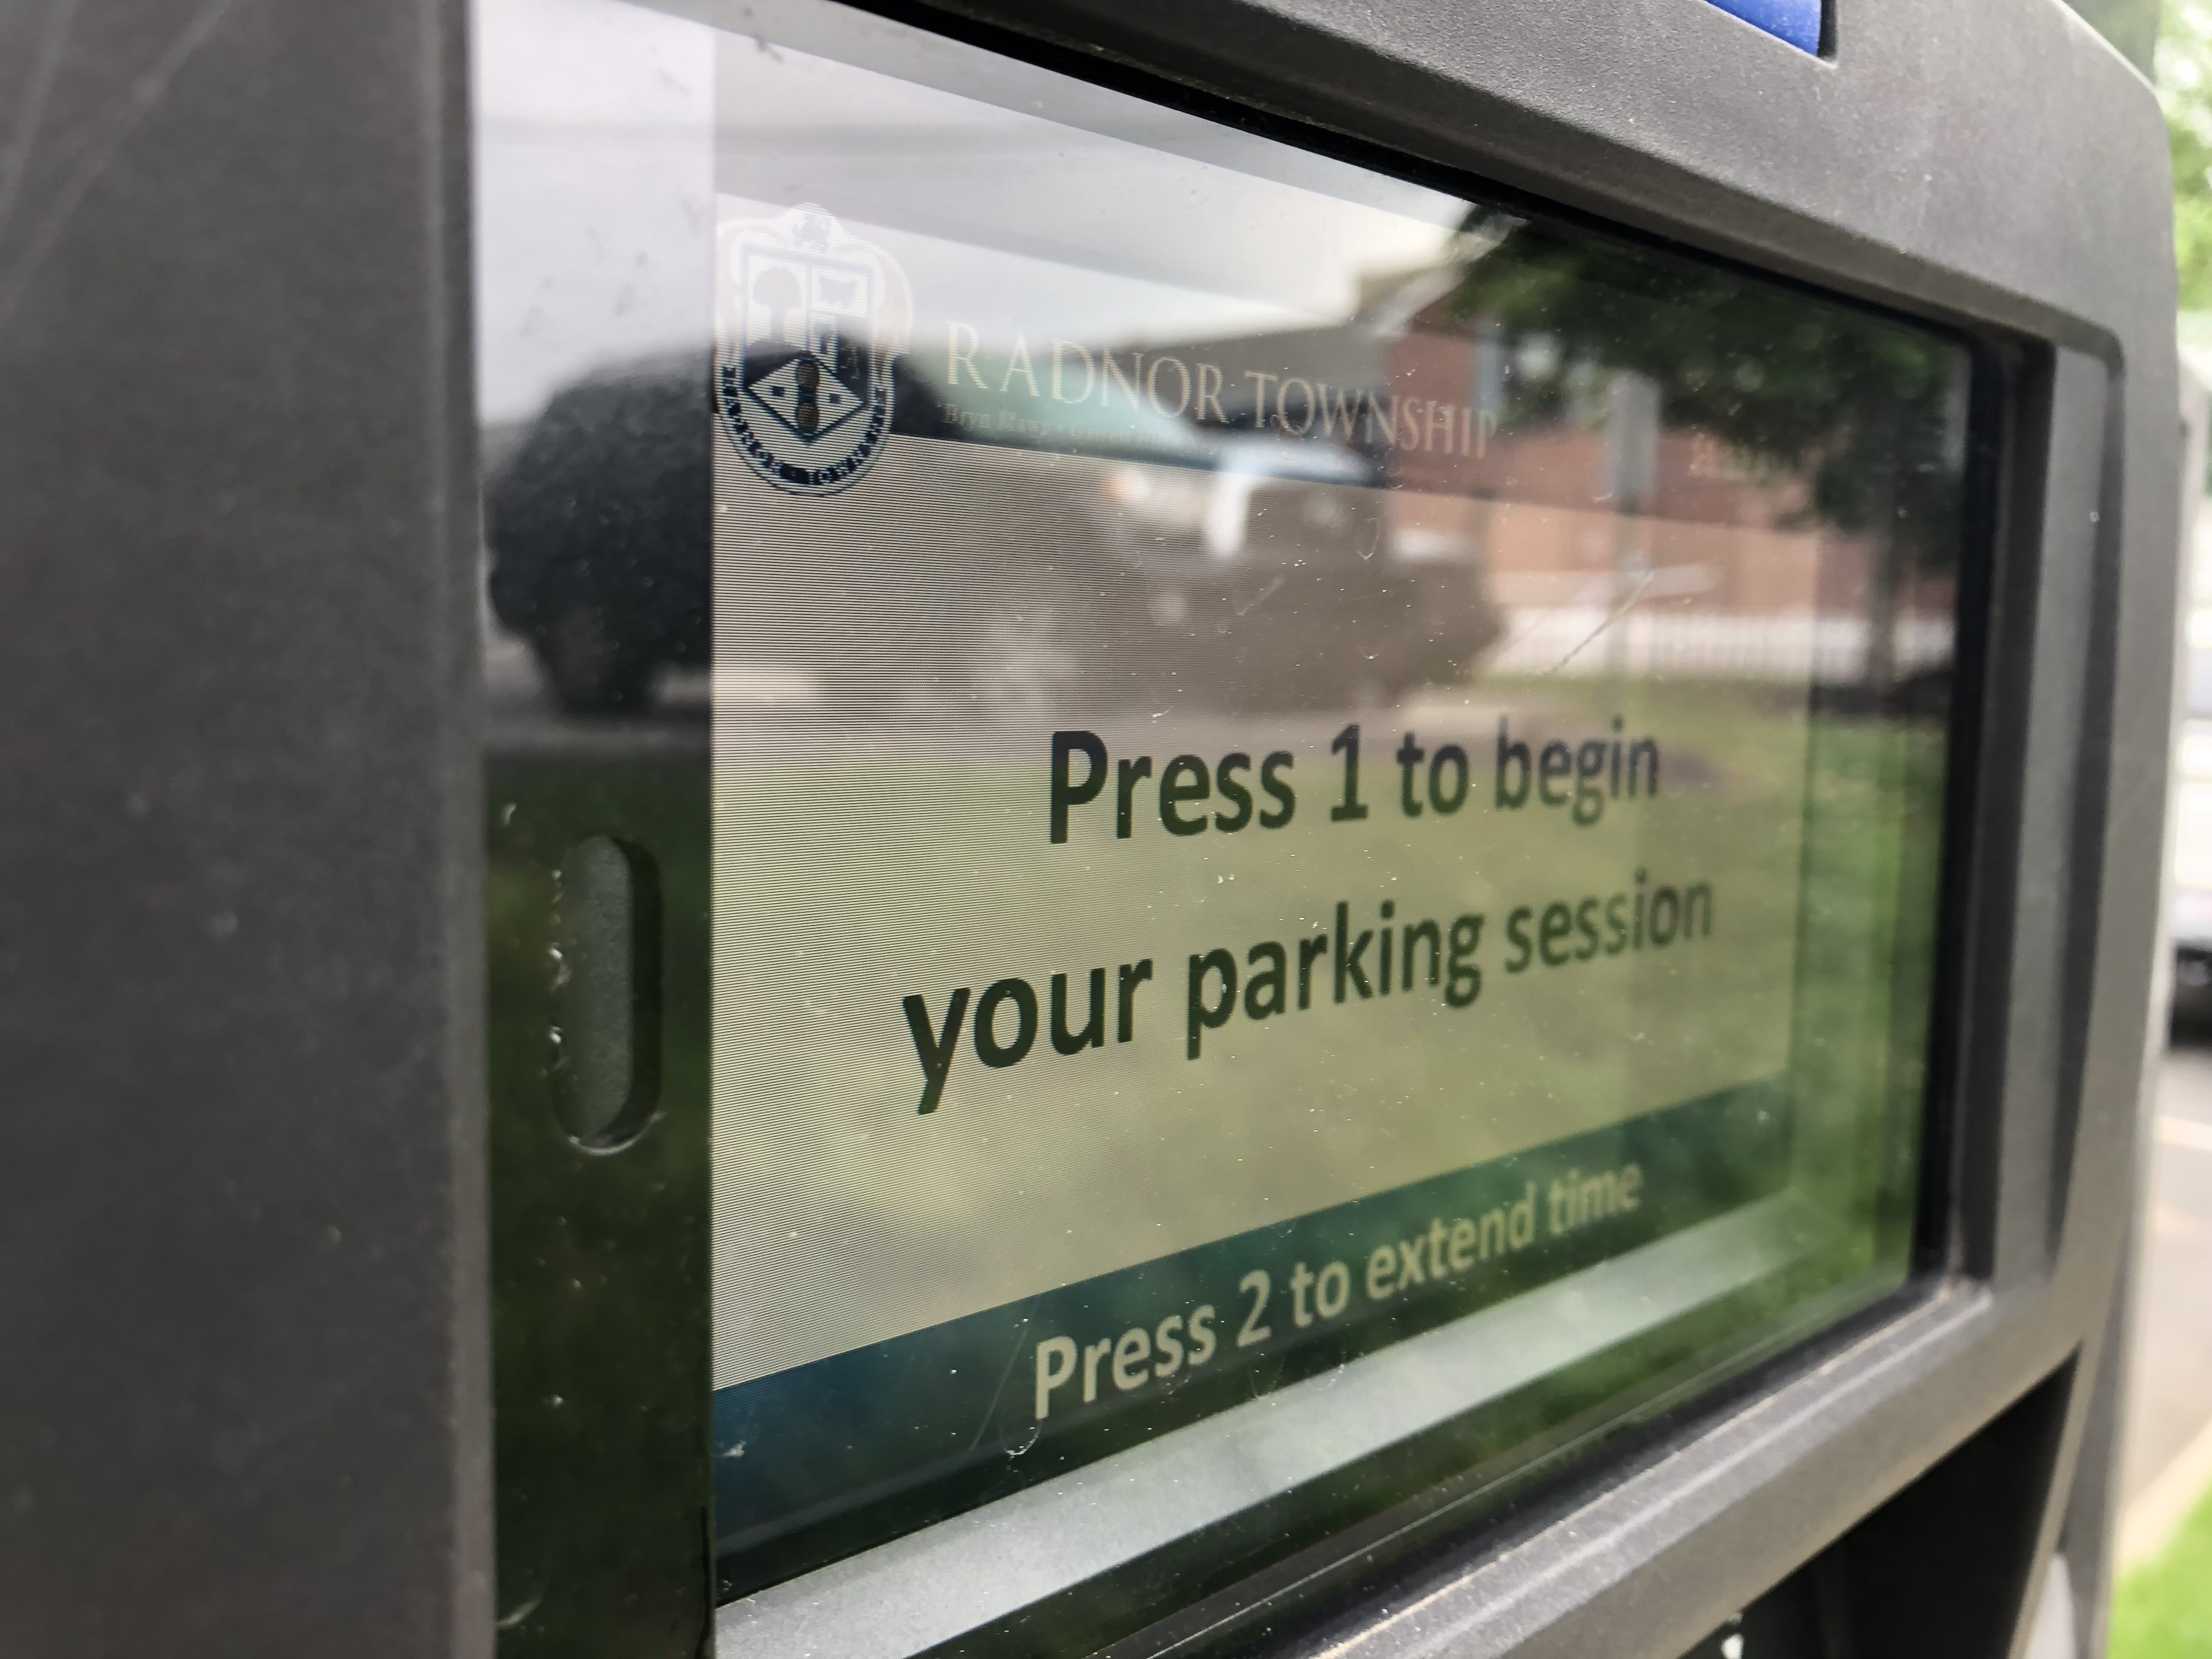 Radnor Township uses parking kiosks that ask drivers to type in their parking space numbers. Some residents get confused and end up parking for the wrong spot.